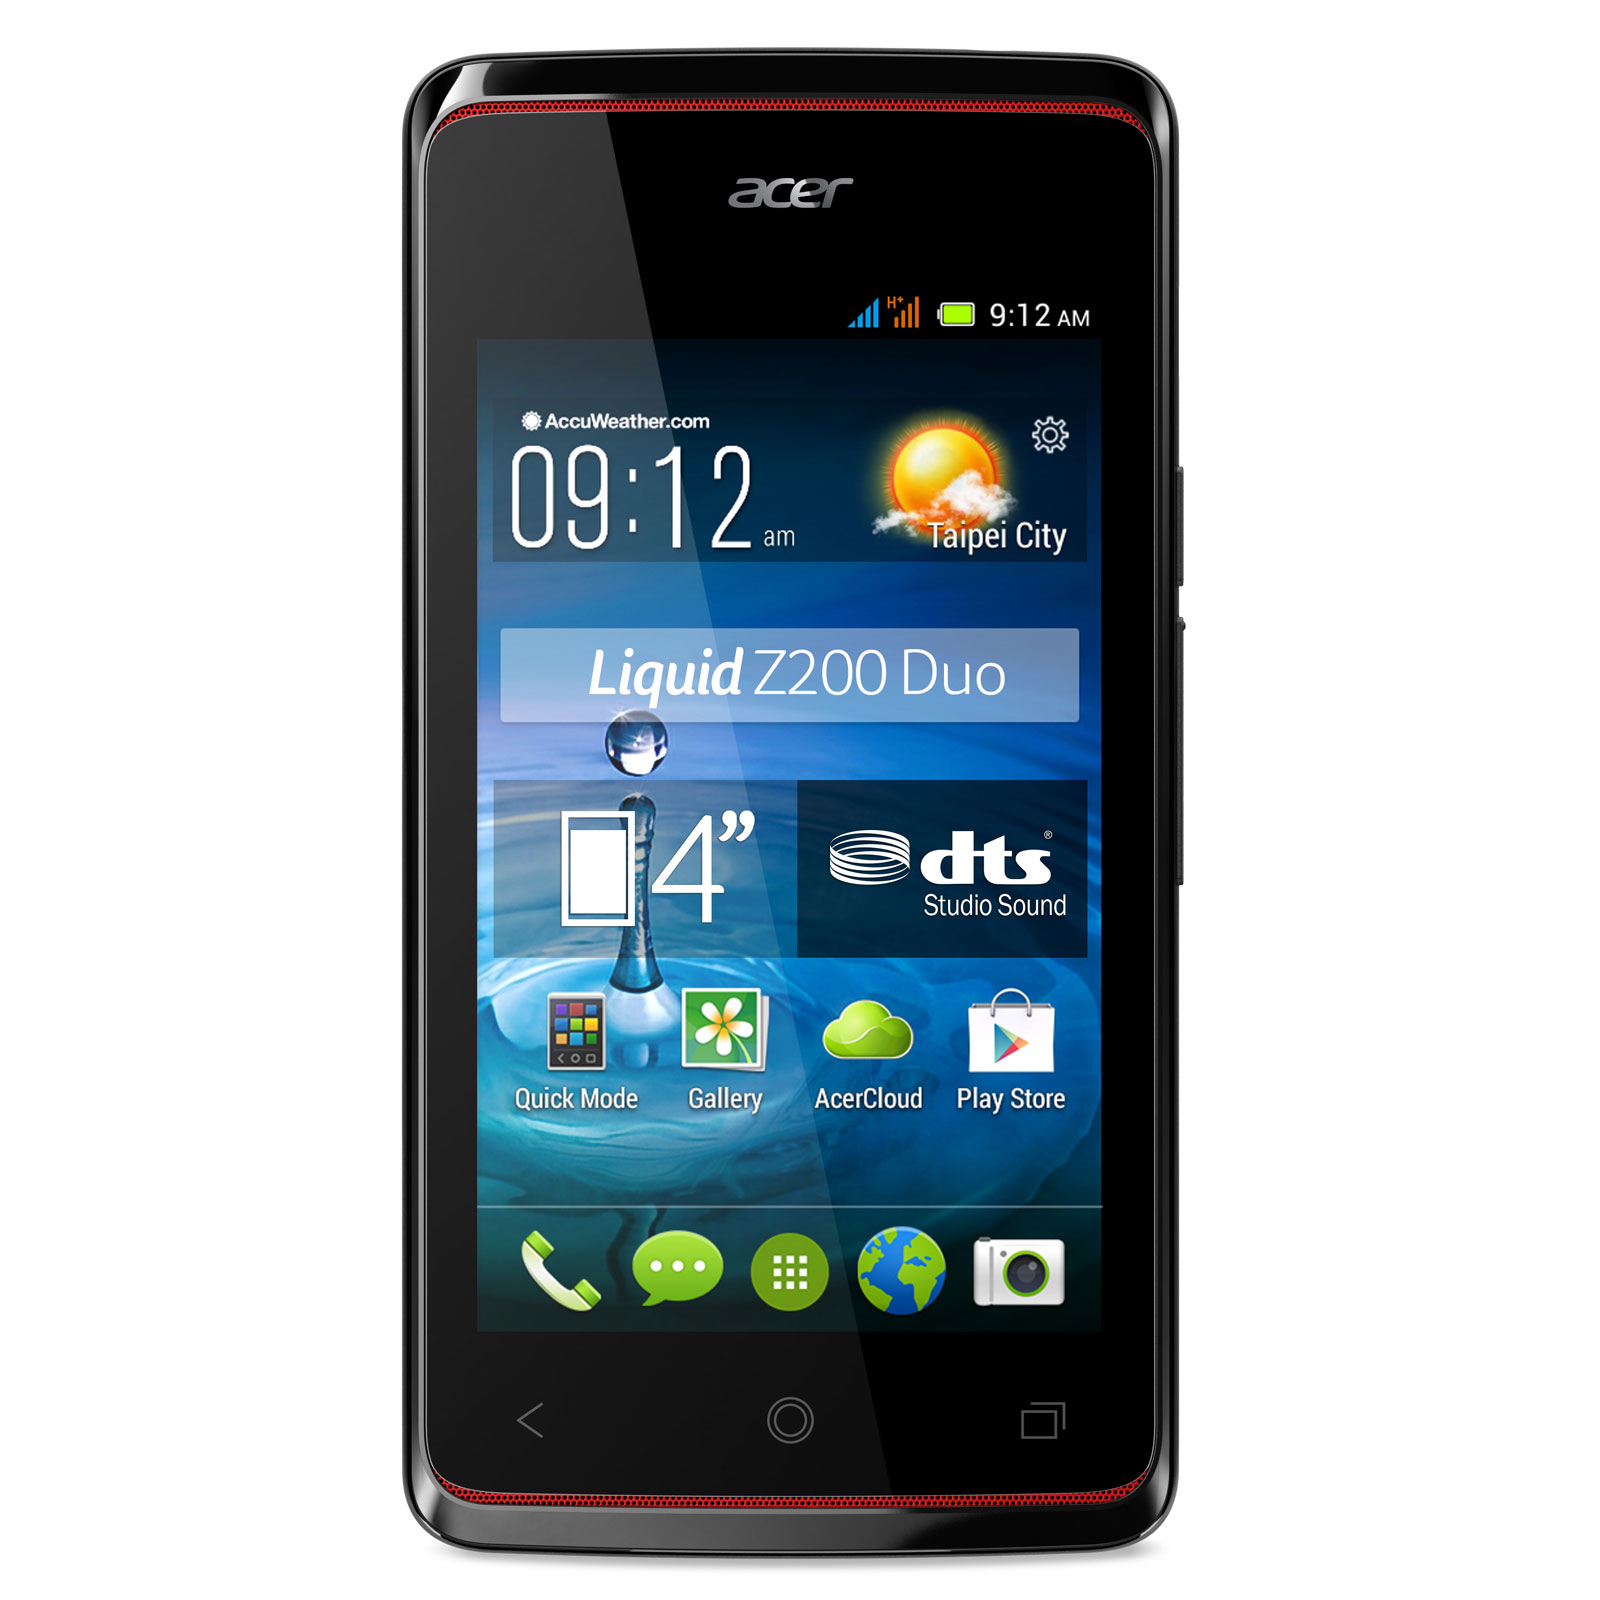 acer liquid z200 duo noir mobile smartphone acer sur. Black Bedroom Furniture Sets. Home Design Ideas